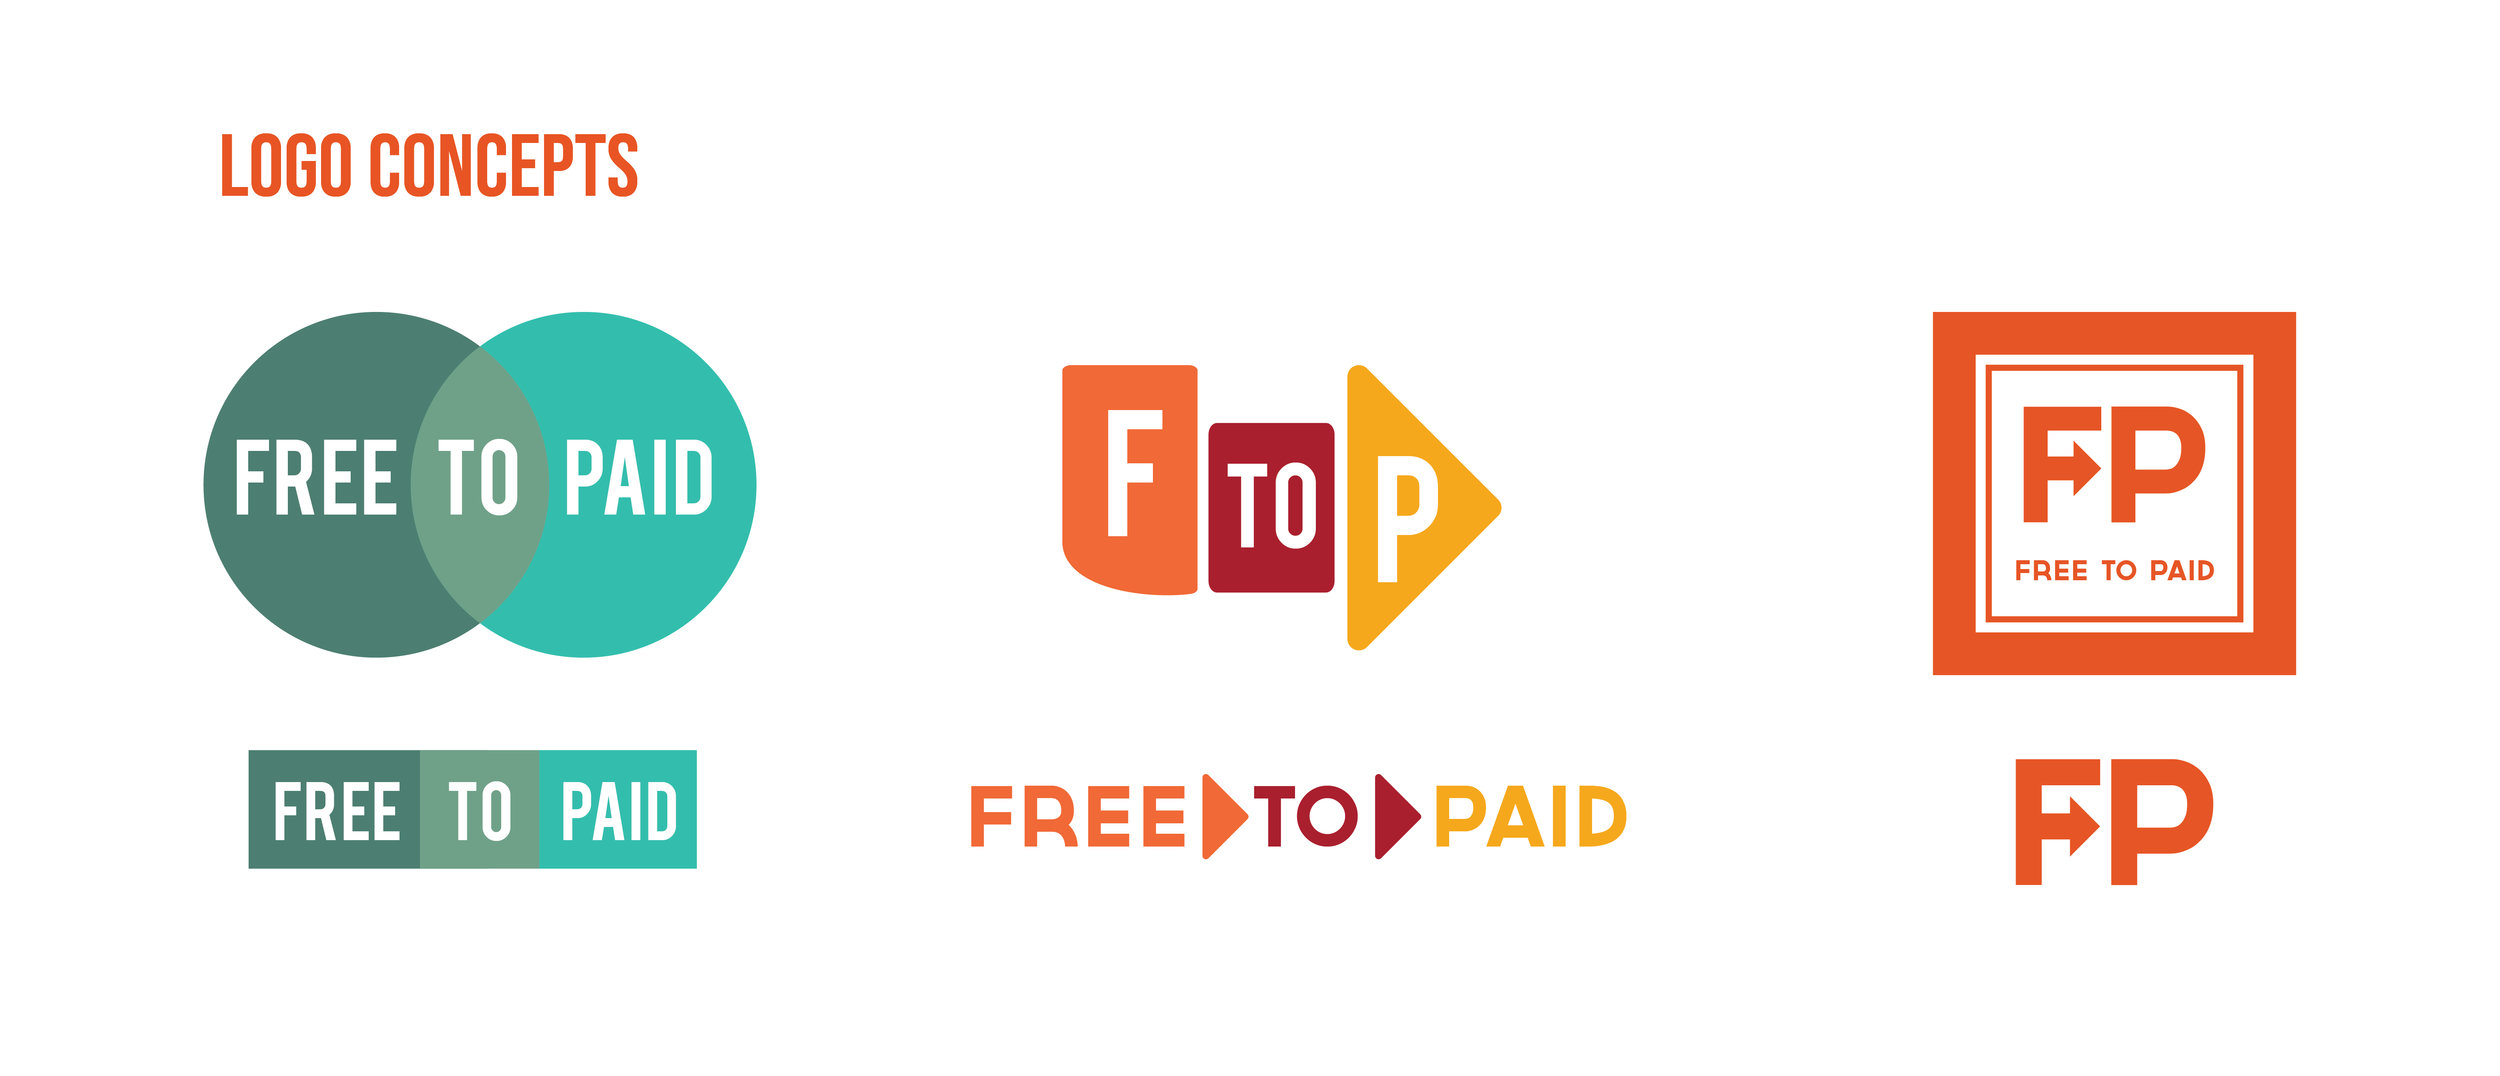 IV_Free to Paid Logo Concepts.jpg